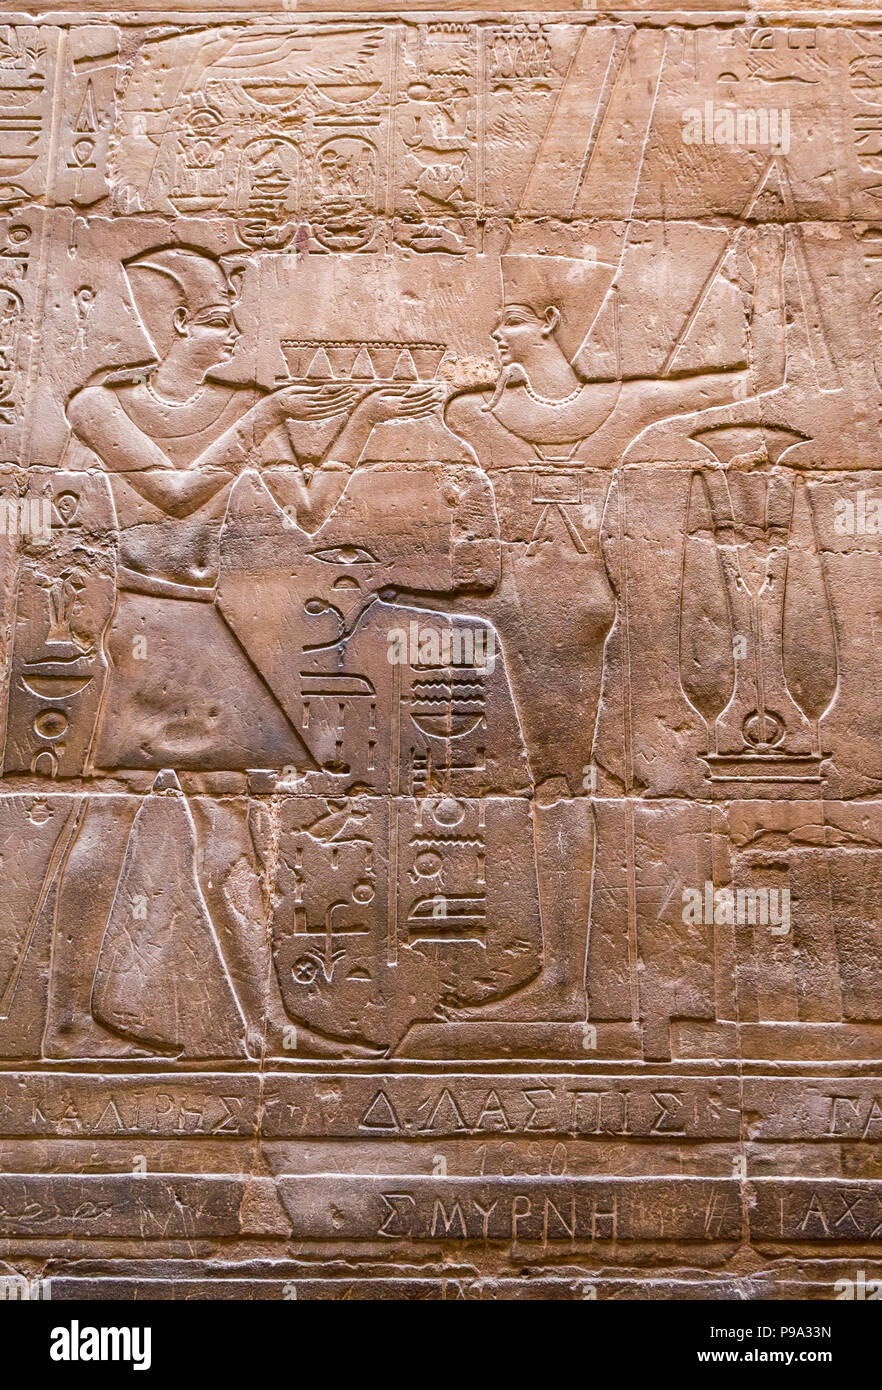 Close up detail of Ancient Egyptian carved figures hieroglyph with Greek script graffiti, Luxor Temple, Luxor, Egypt, Africa - Stock Image